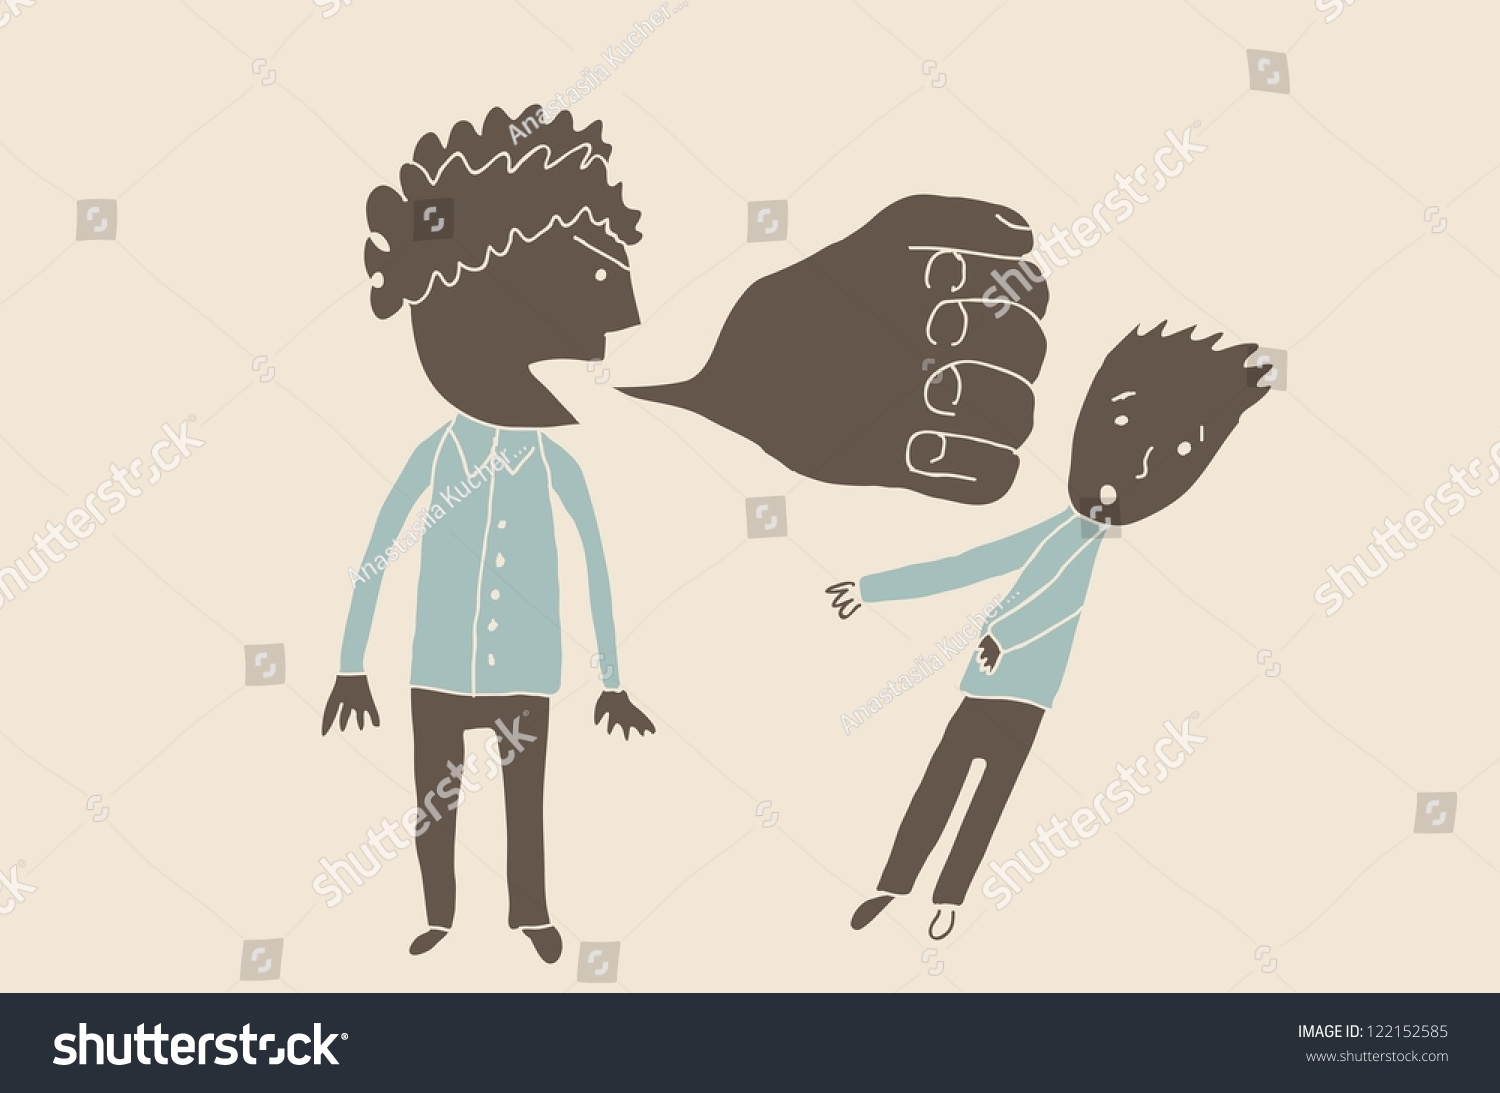 Effects of verbal bullying on the victim